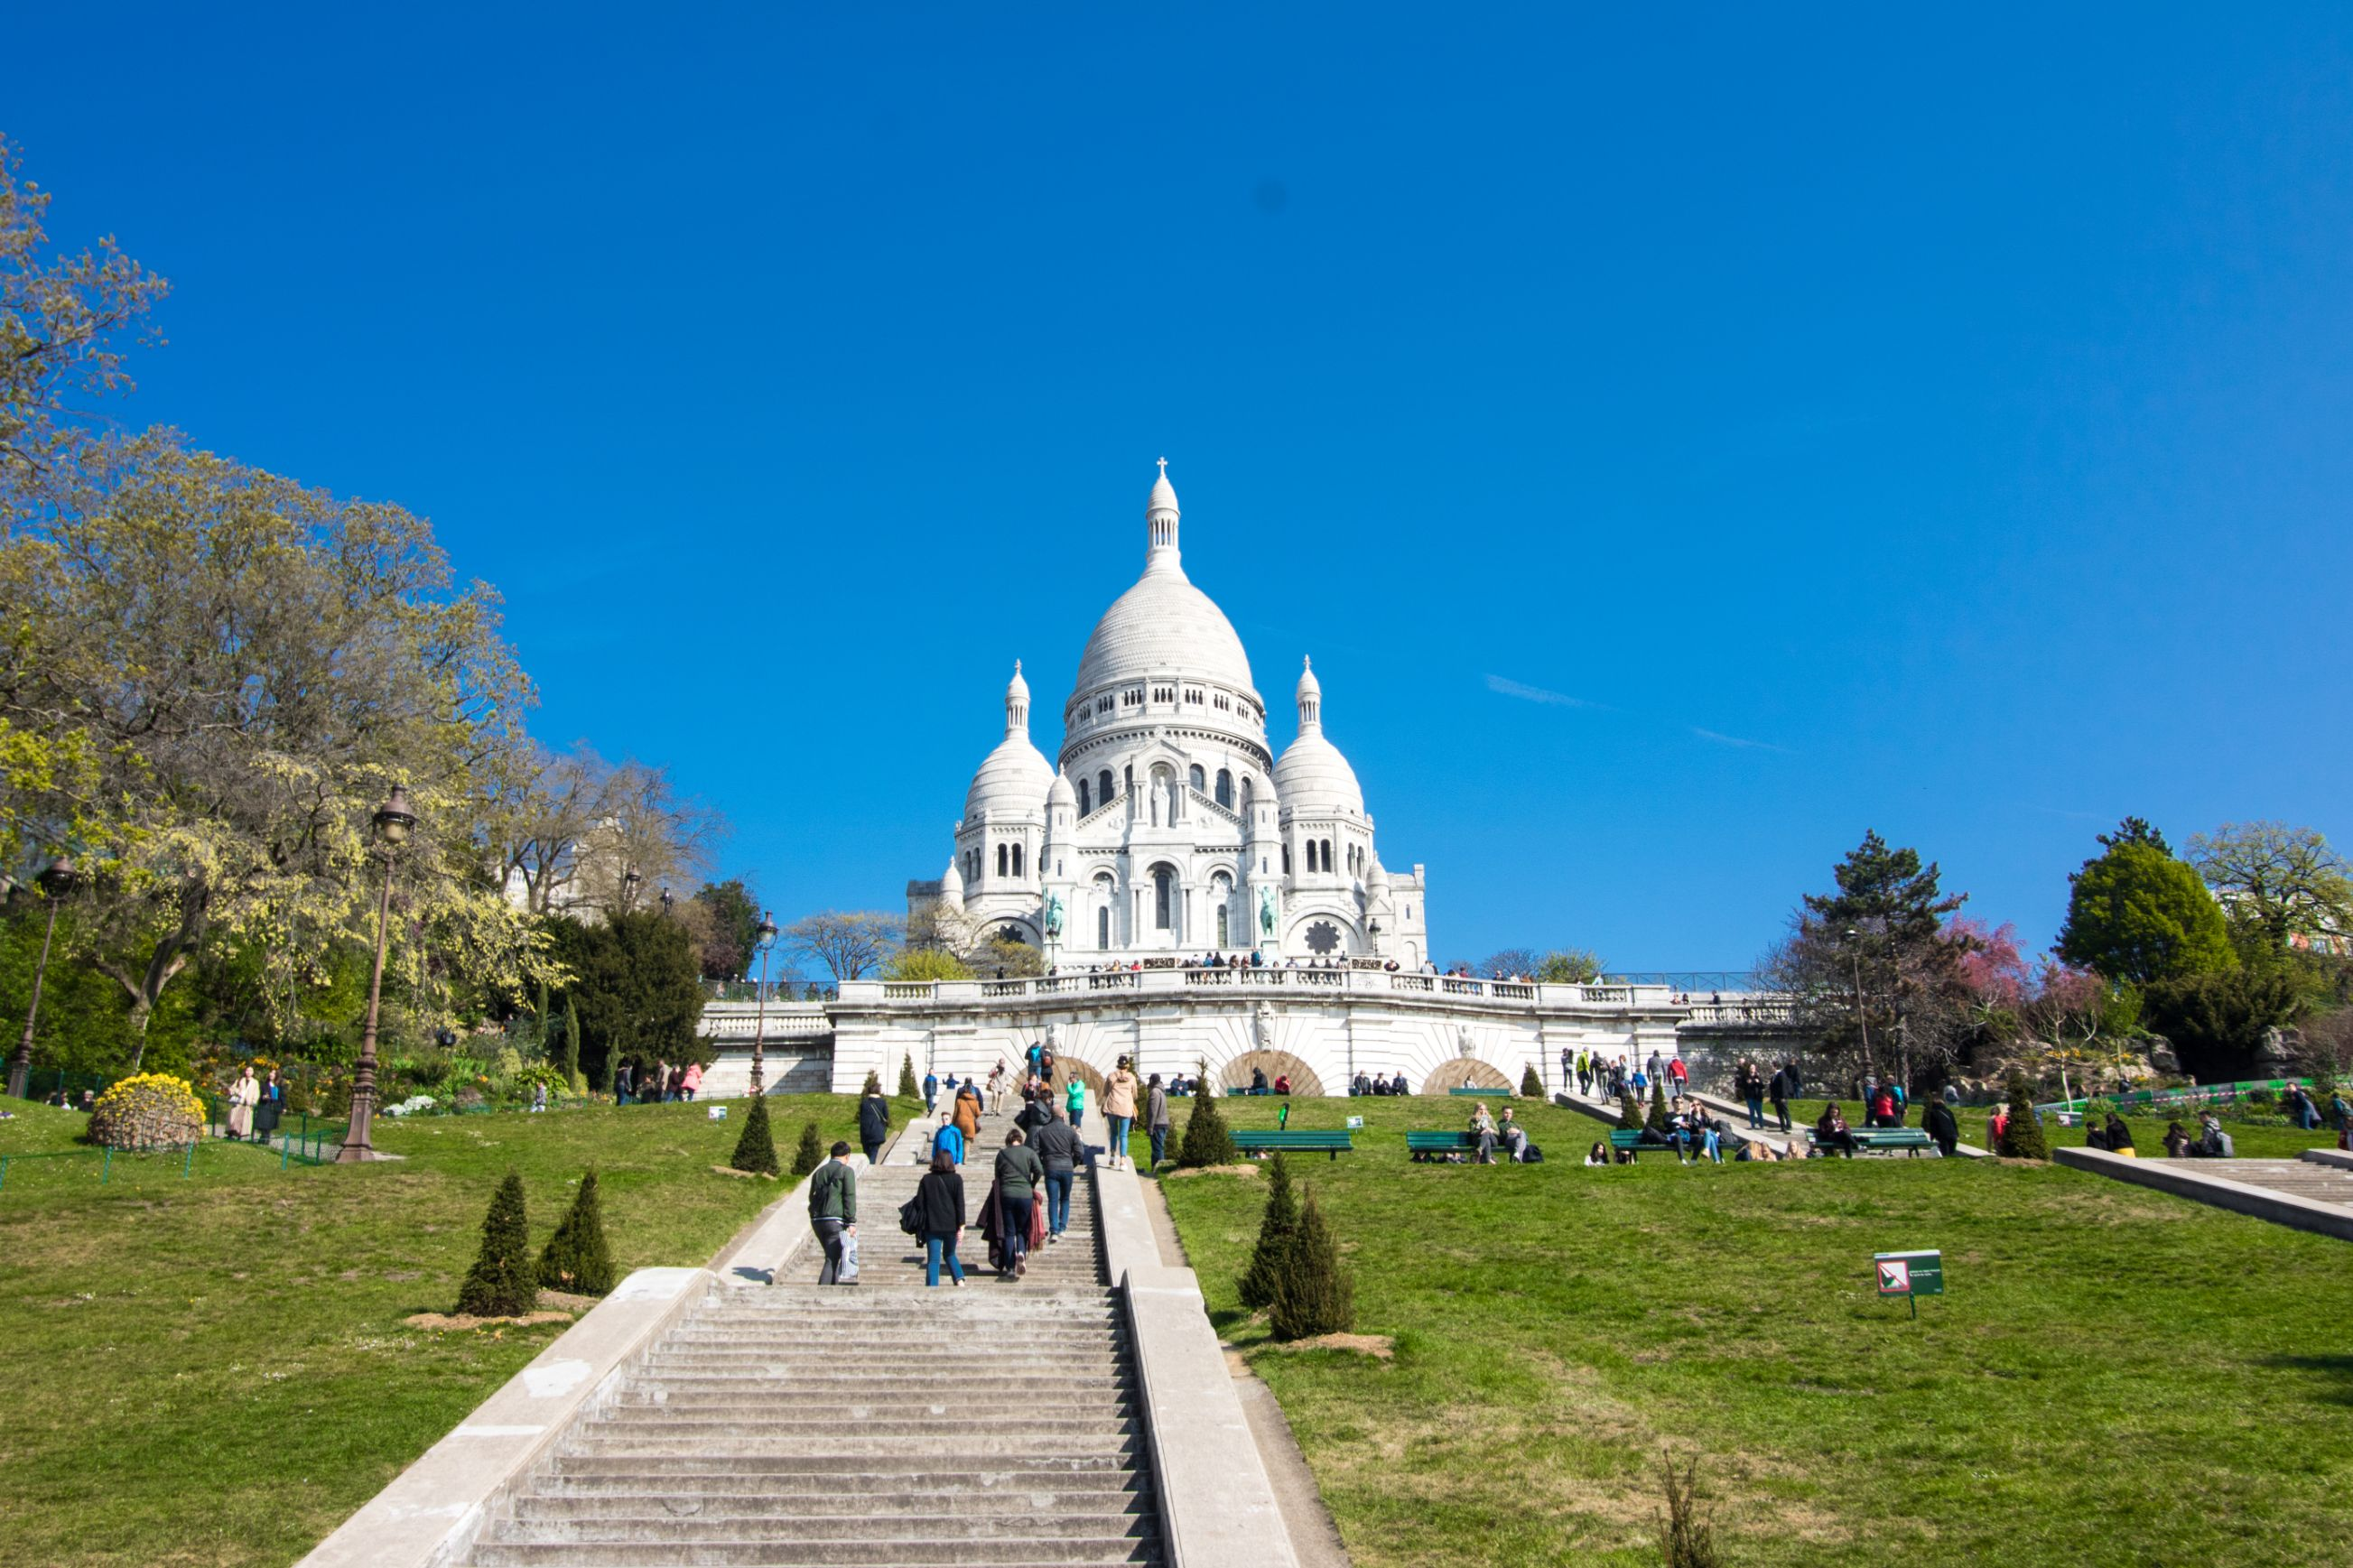 Sacre-Couer Basilica in Montmartre in Paris. Roman Catholic Church sat on top of steep hill. People walking up a path on a hill towards church on a sunny summer day with blue skies. The Best Way to Easily See Paris in Two Days [Itinerary]. Two days in Paris. Weekend in Paris. Paris in a weekend. Paris weekend travel guide. Weekend Paris travel guide. Paris weekend trip. Paris weekend packing. Weekend Paris trip. Paris two day itinerary. Paris travel tips. Paris travel itinerary. Paris travel blog. Paris travel guide. Things to do in Paris. What to do in Paris. Places to See in Paris. Things to see in Paris. What to see in Paris. Paris France. Paris photography. Click through to read more...